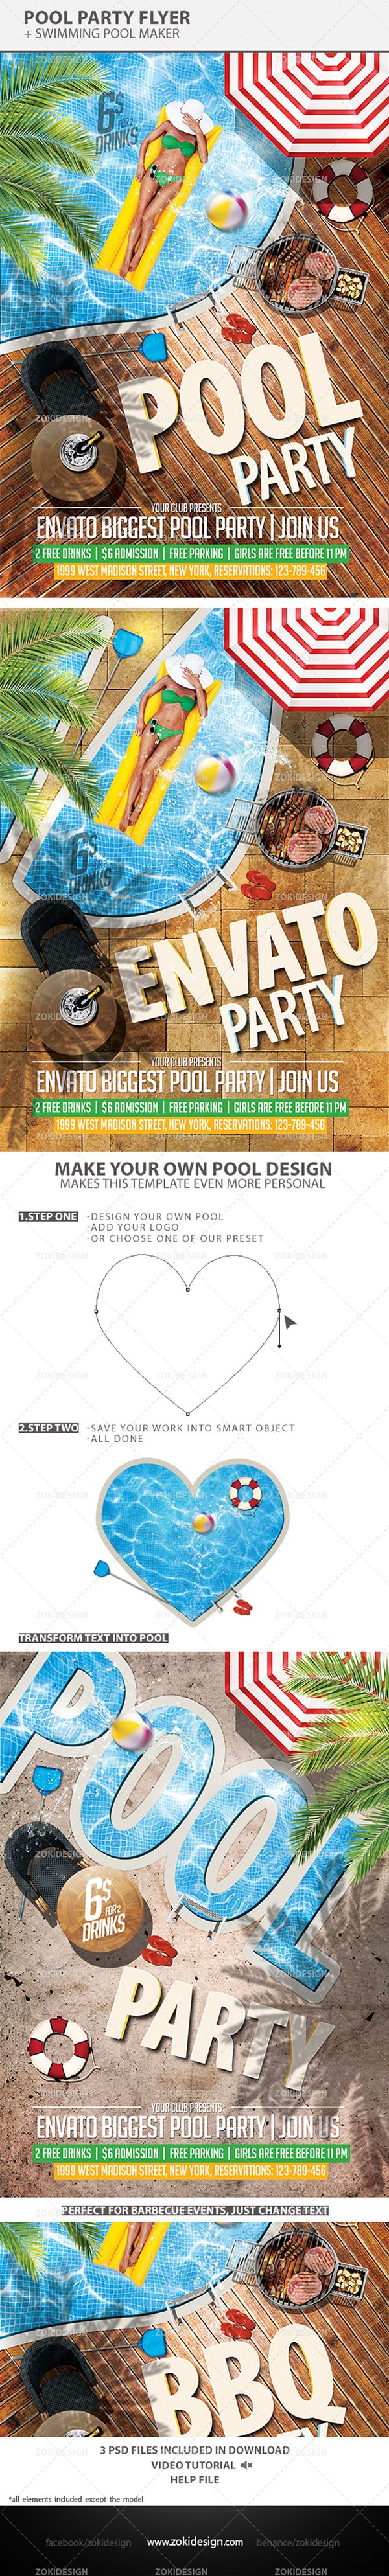 Best 25+ Party flyer ideas on Pinterest | Text design, Flyer ...